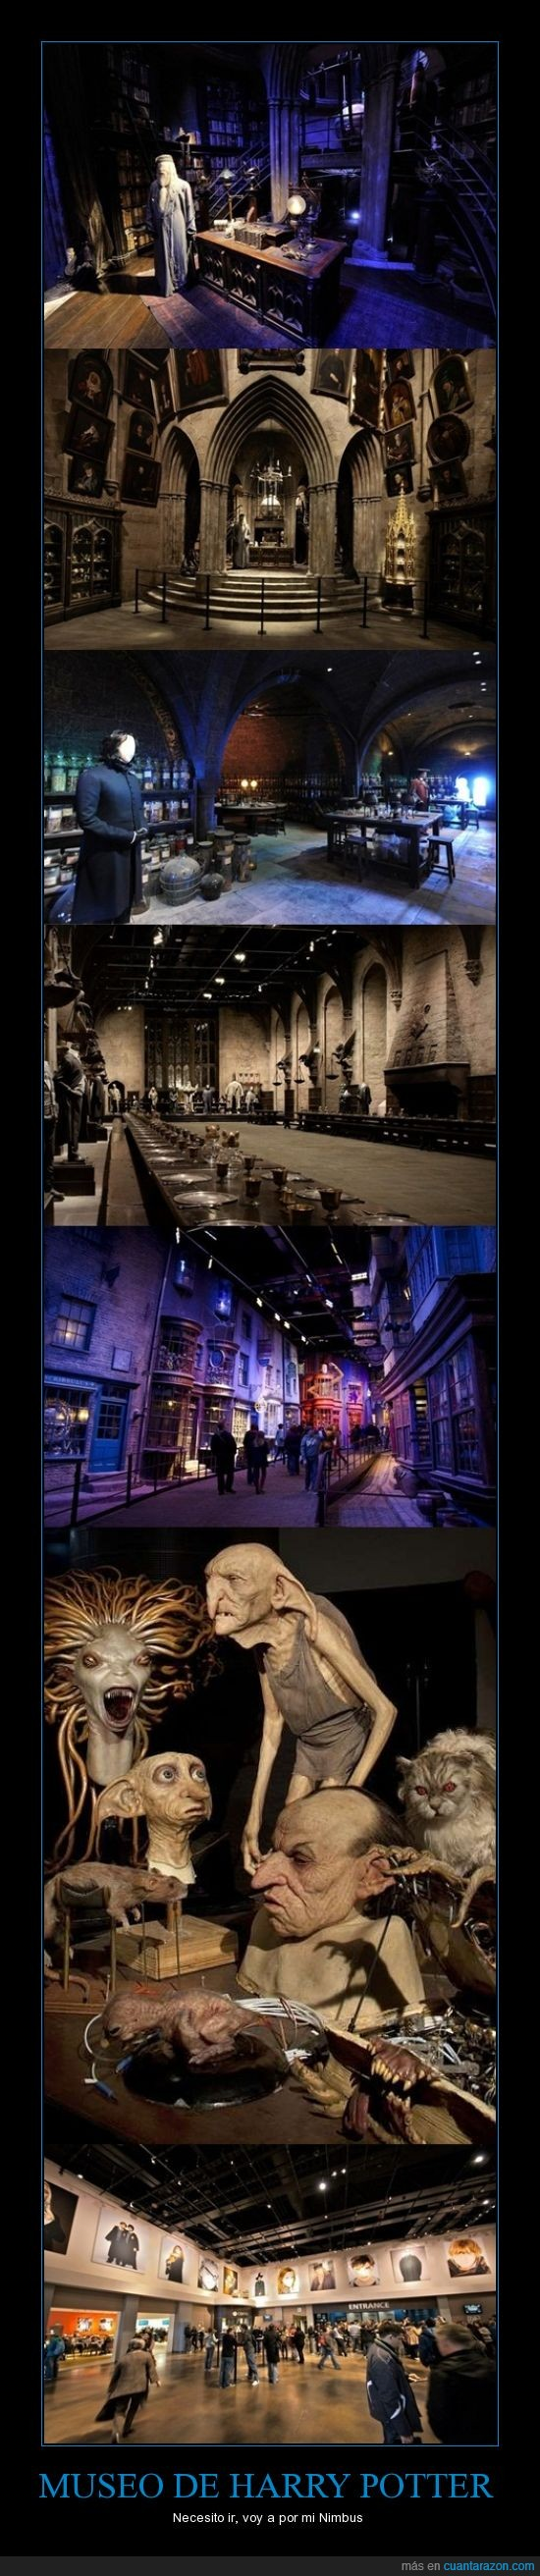 Harry Potter,Londres,Museo